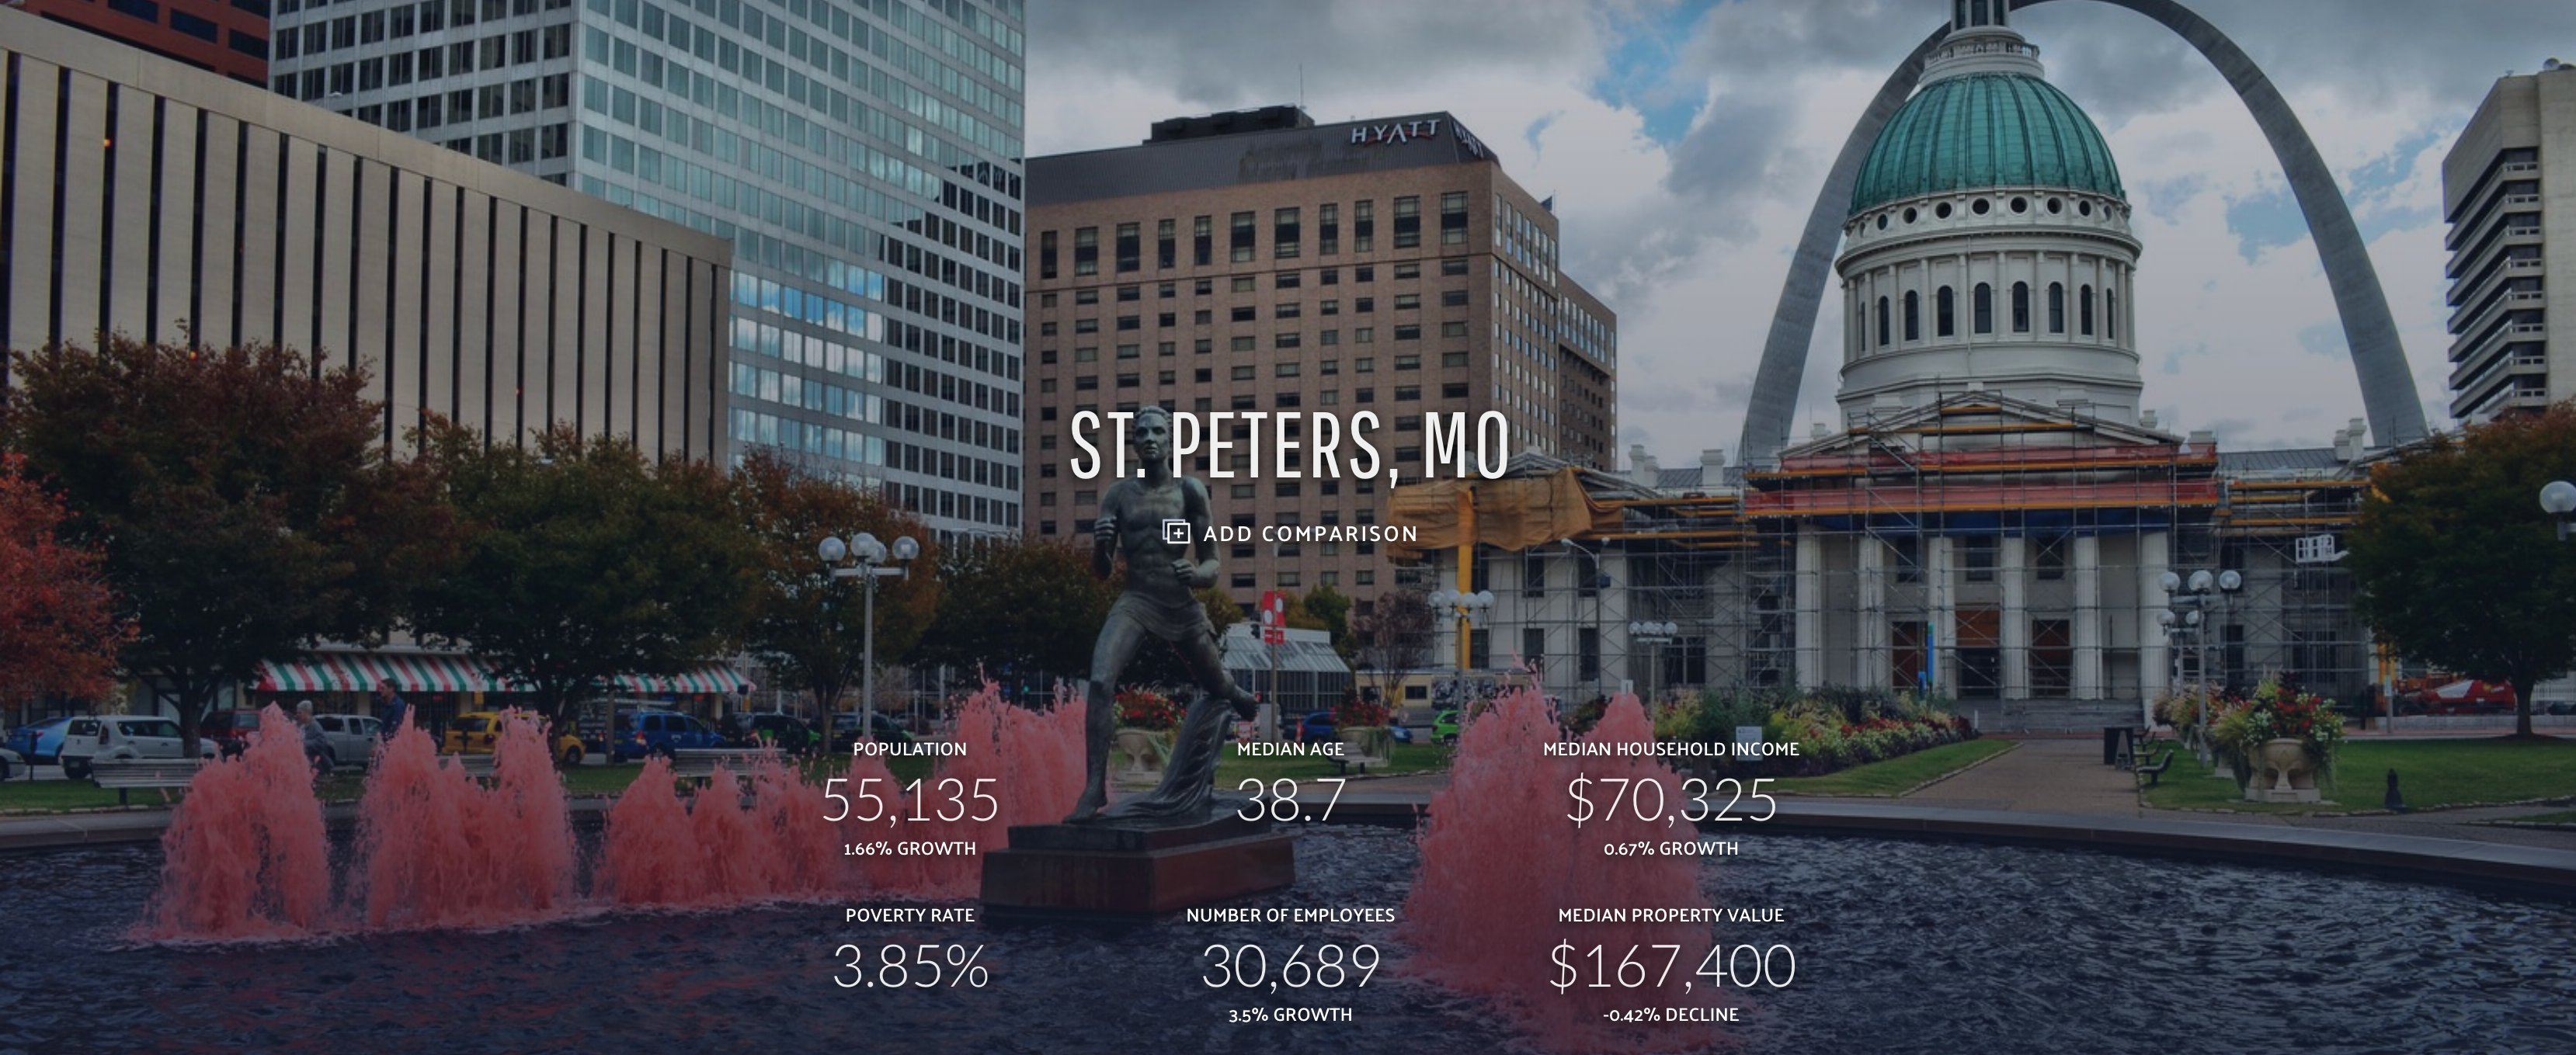 St. Peters Home Loans Mortgage